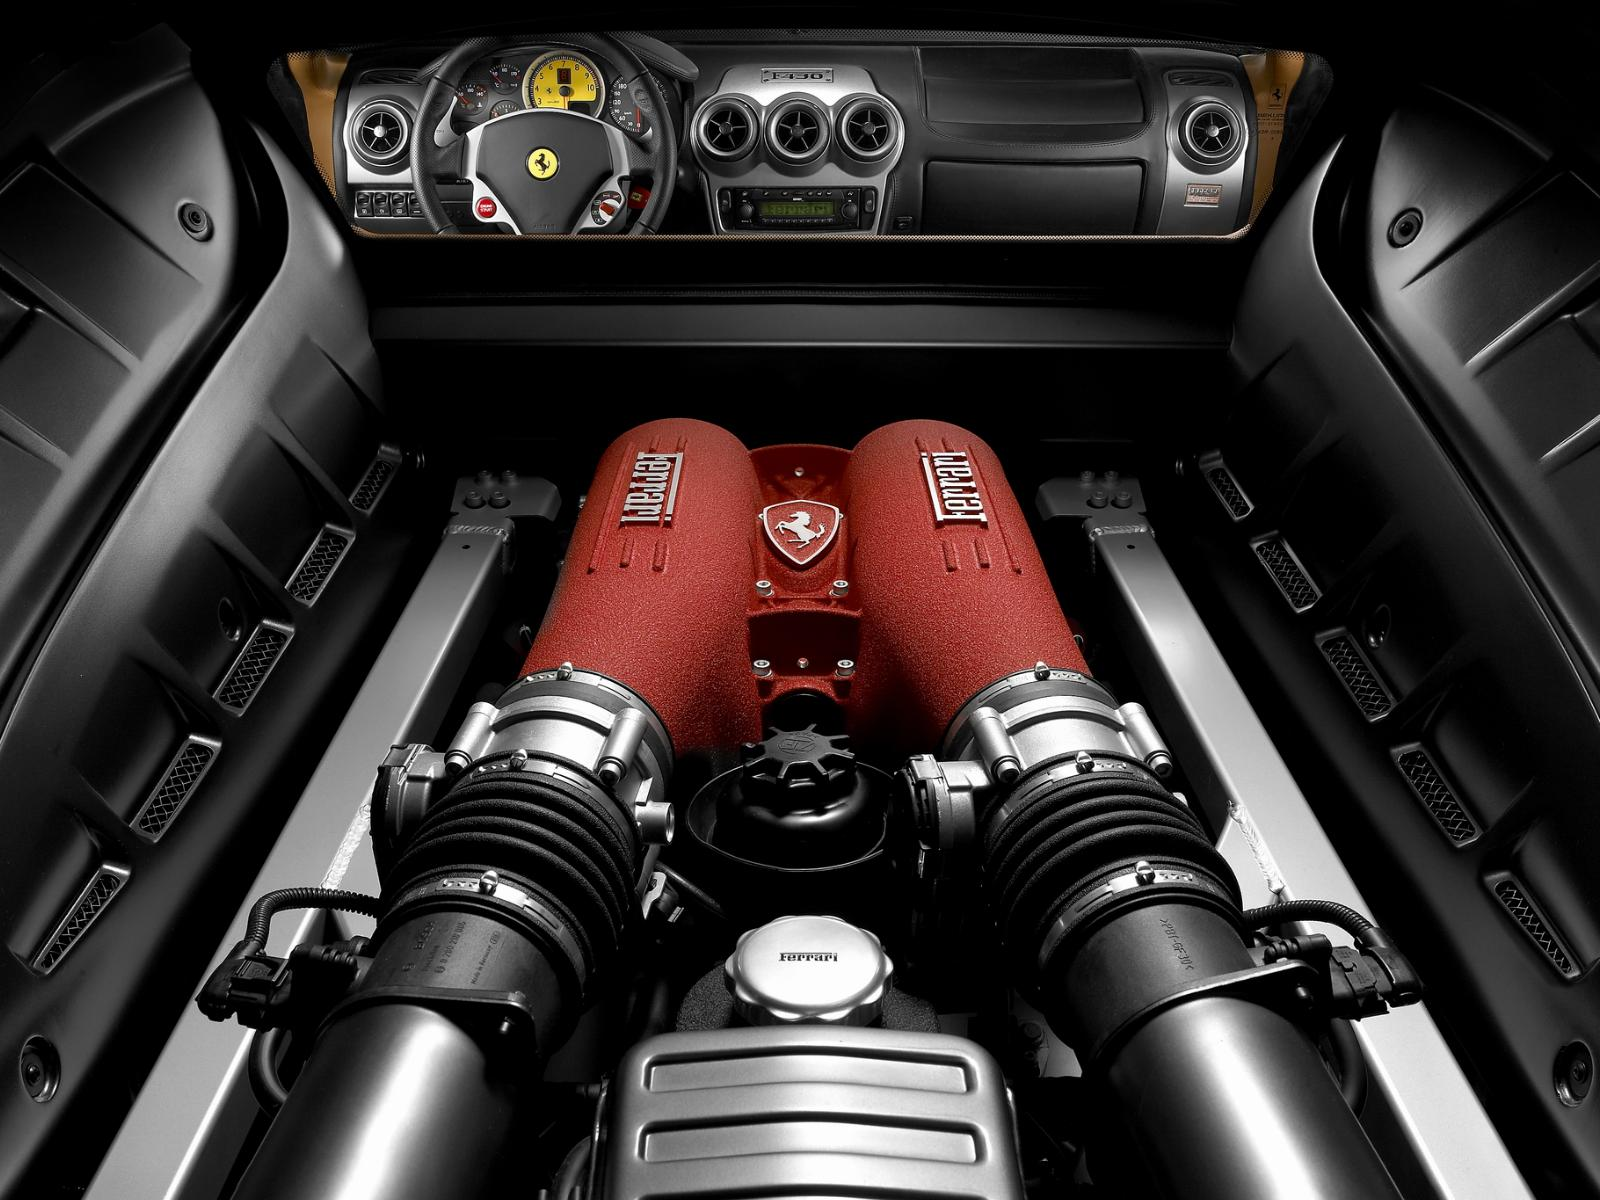 Ferrari F430 engine #1